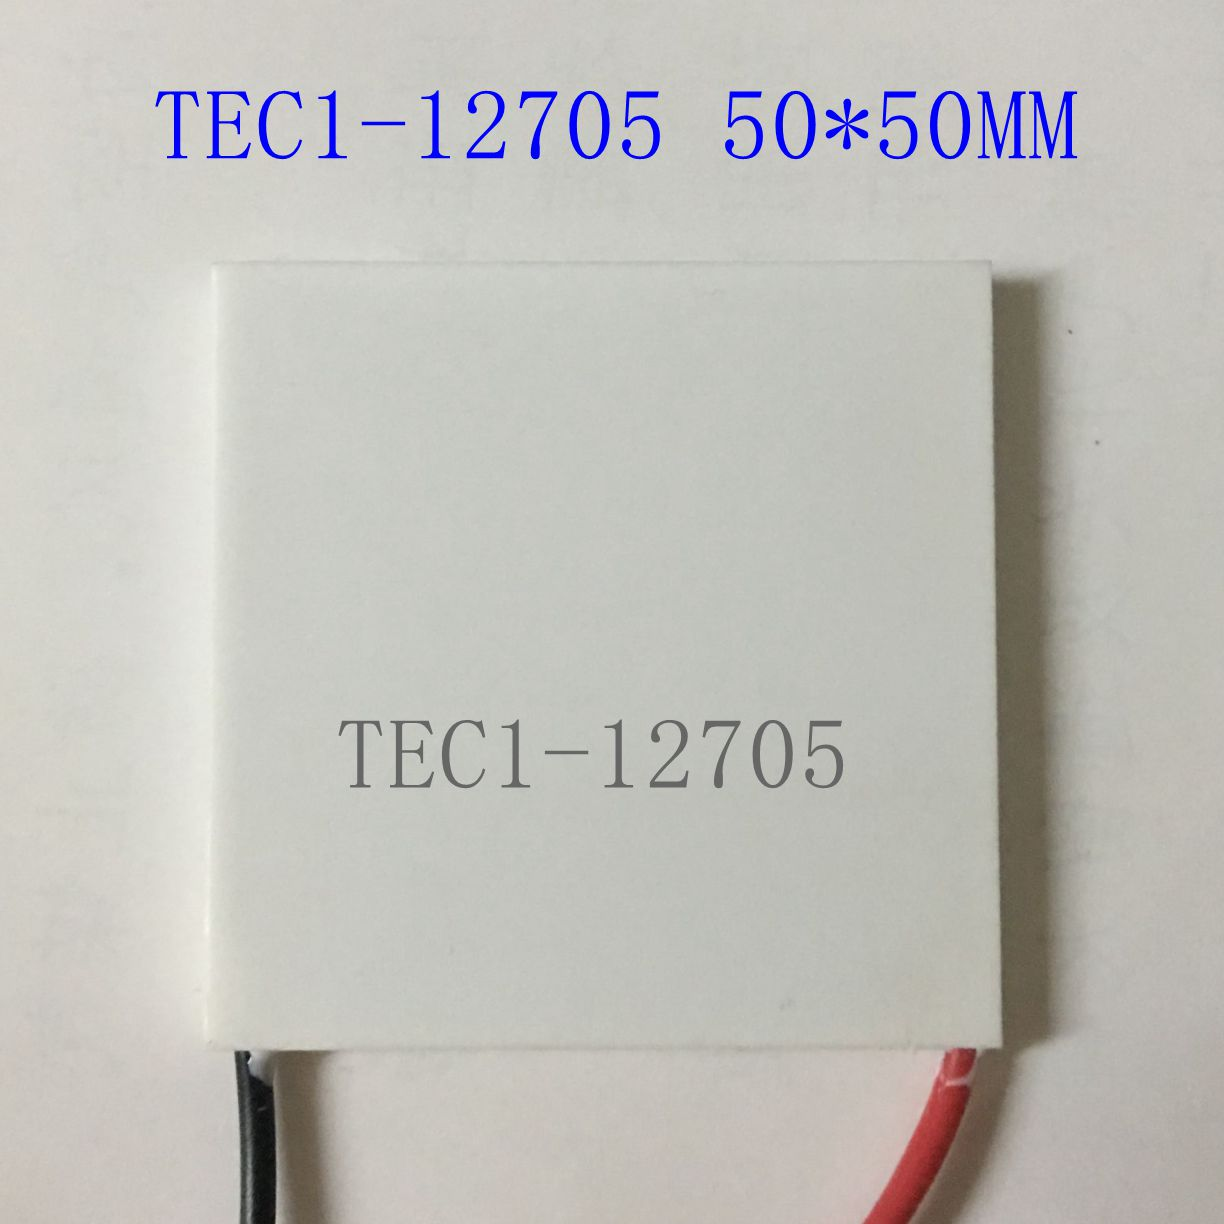 Semiconductor Refrigeration Sheet TEC1-12705 50*50MM 12V5A for Refrigeration and Heat Dissipation Fast Industrial EquipmentSemiconductor Refrigeration Sheet TEC1-12705 50*50MM 12V5A for Refrigeration and Heat Dissipation Fast Industrial Equipment